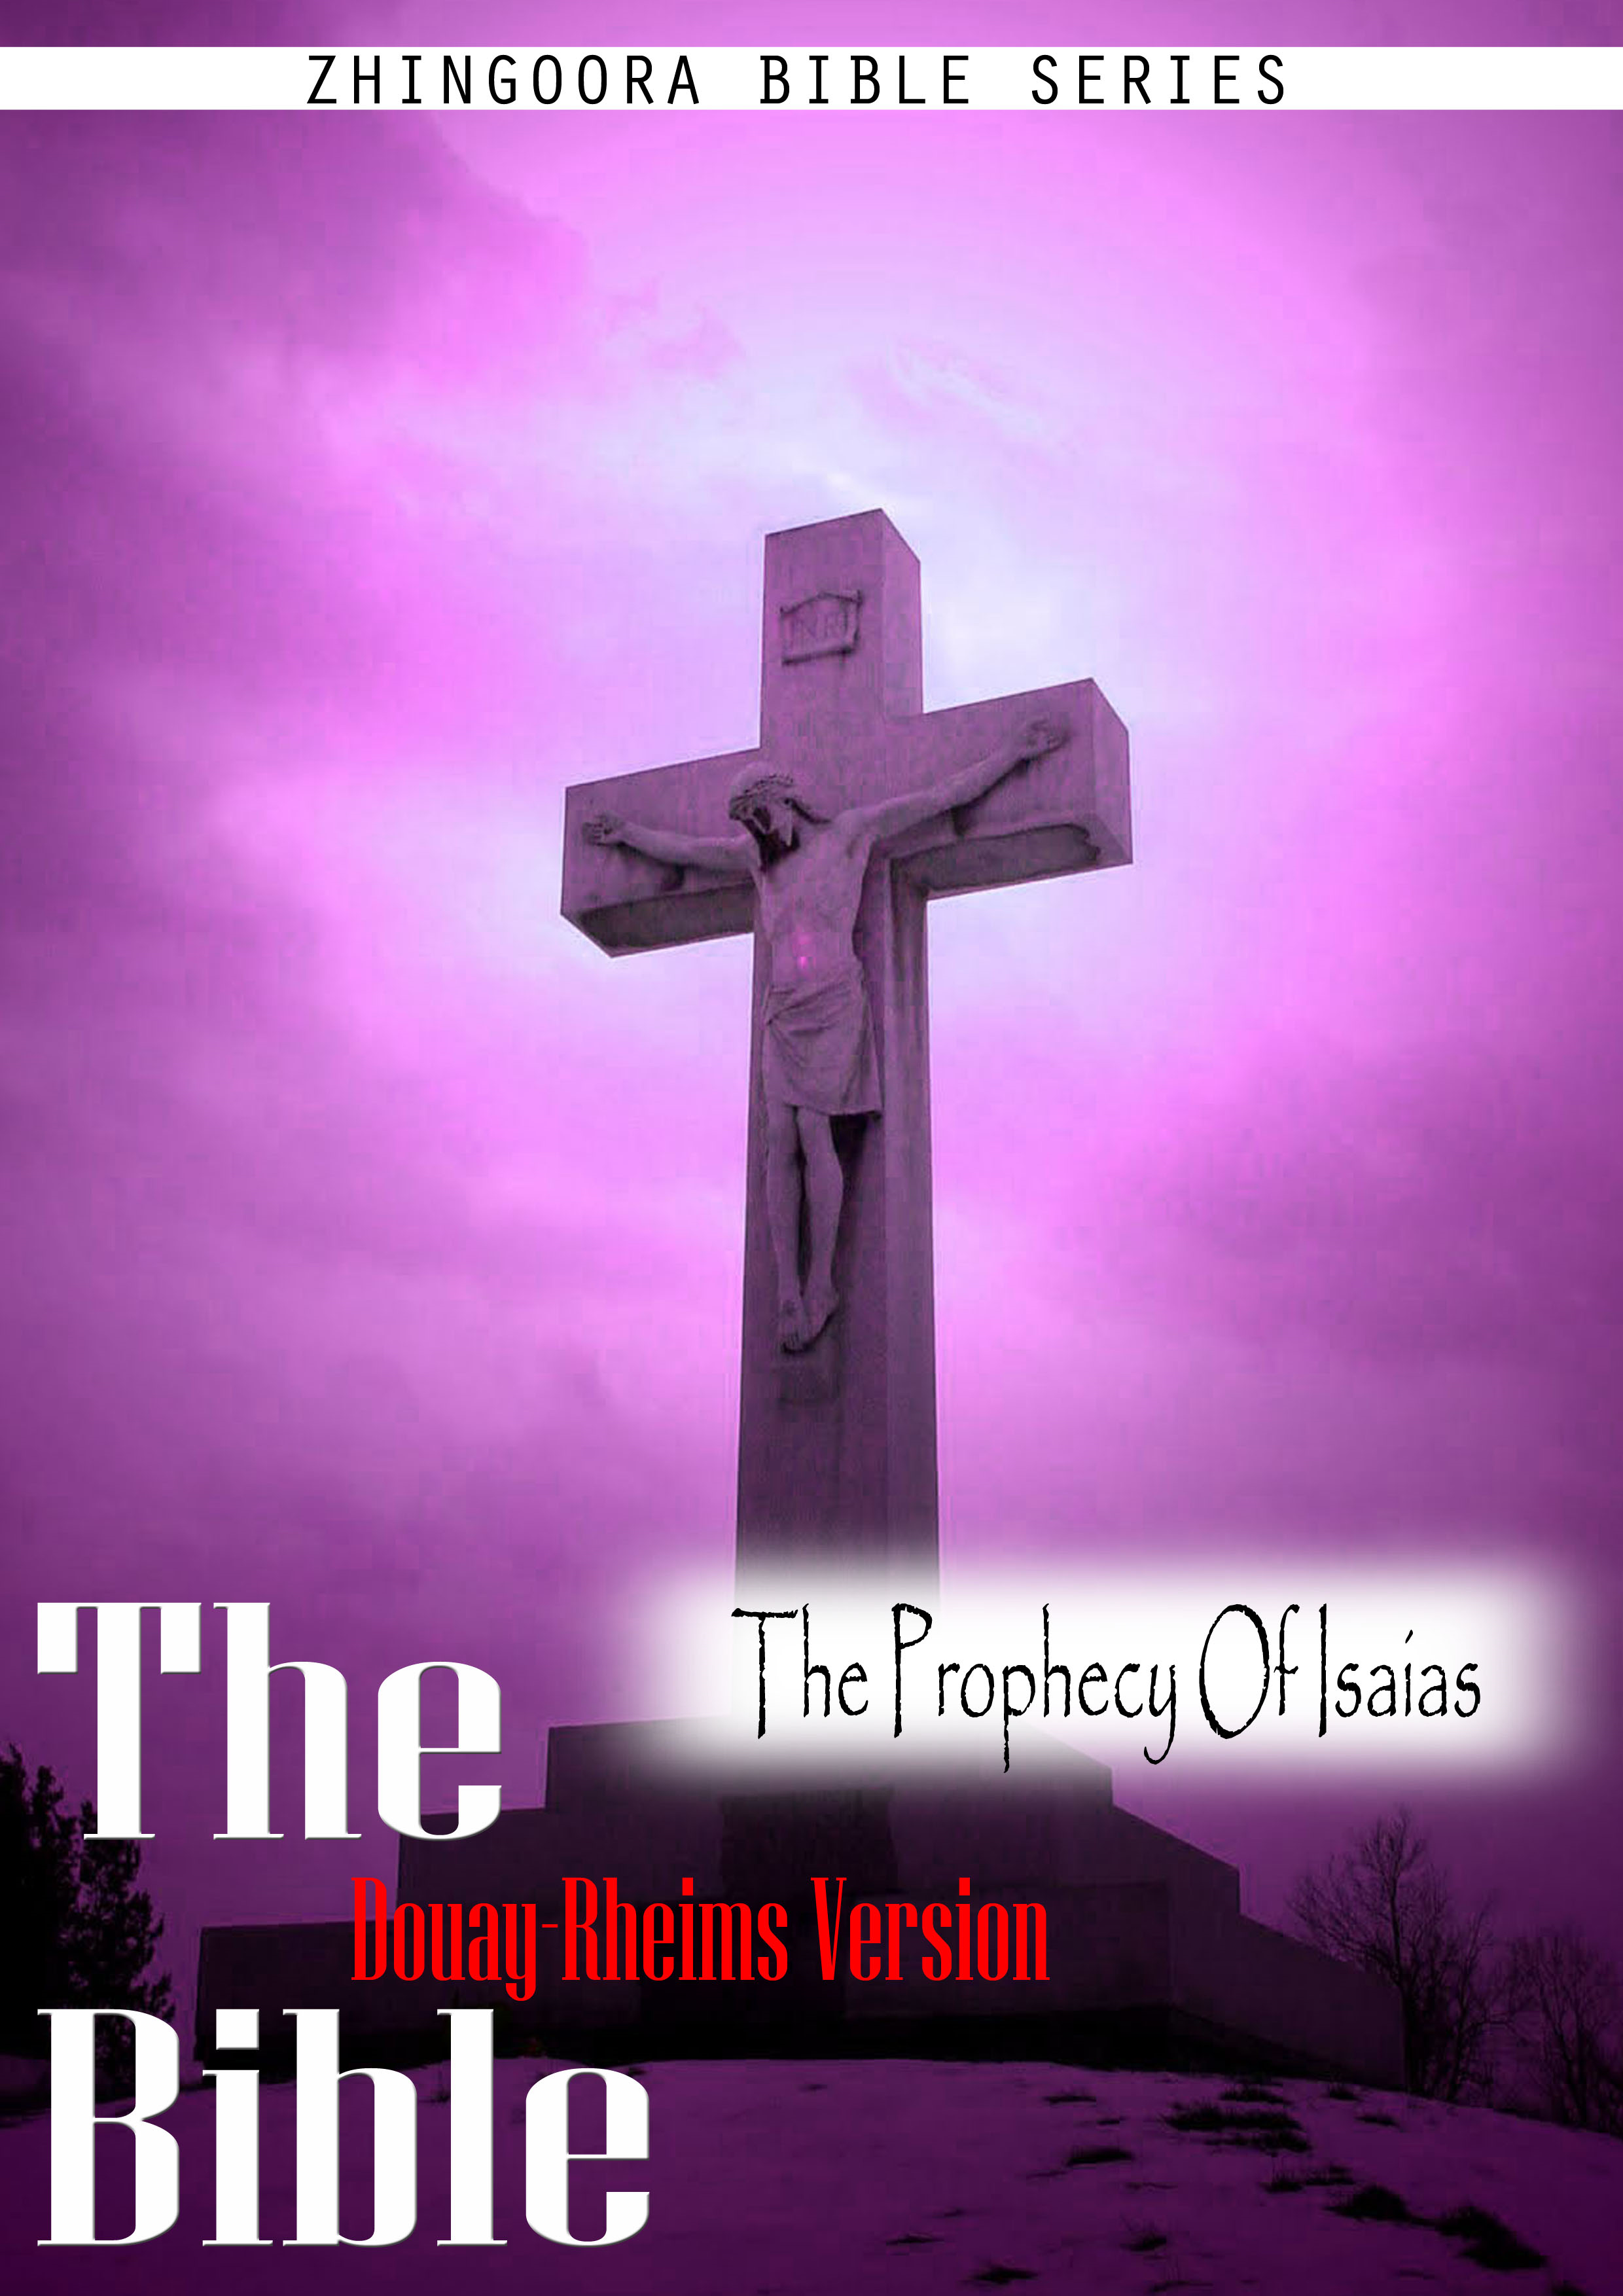 The Holy Bible Douay-Rheims Version,  The Prophecy Of Isaias